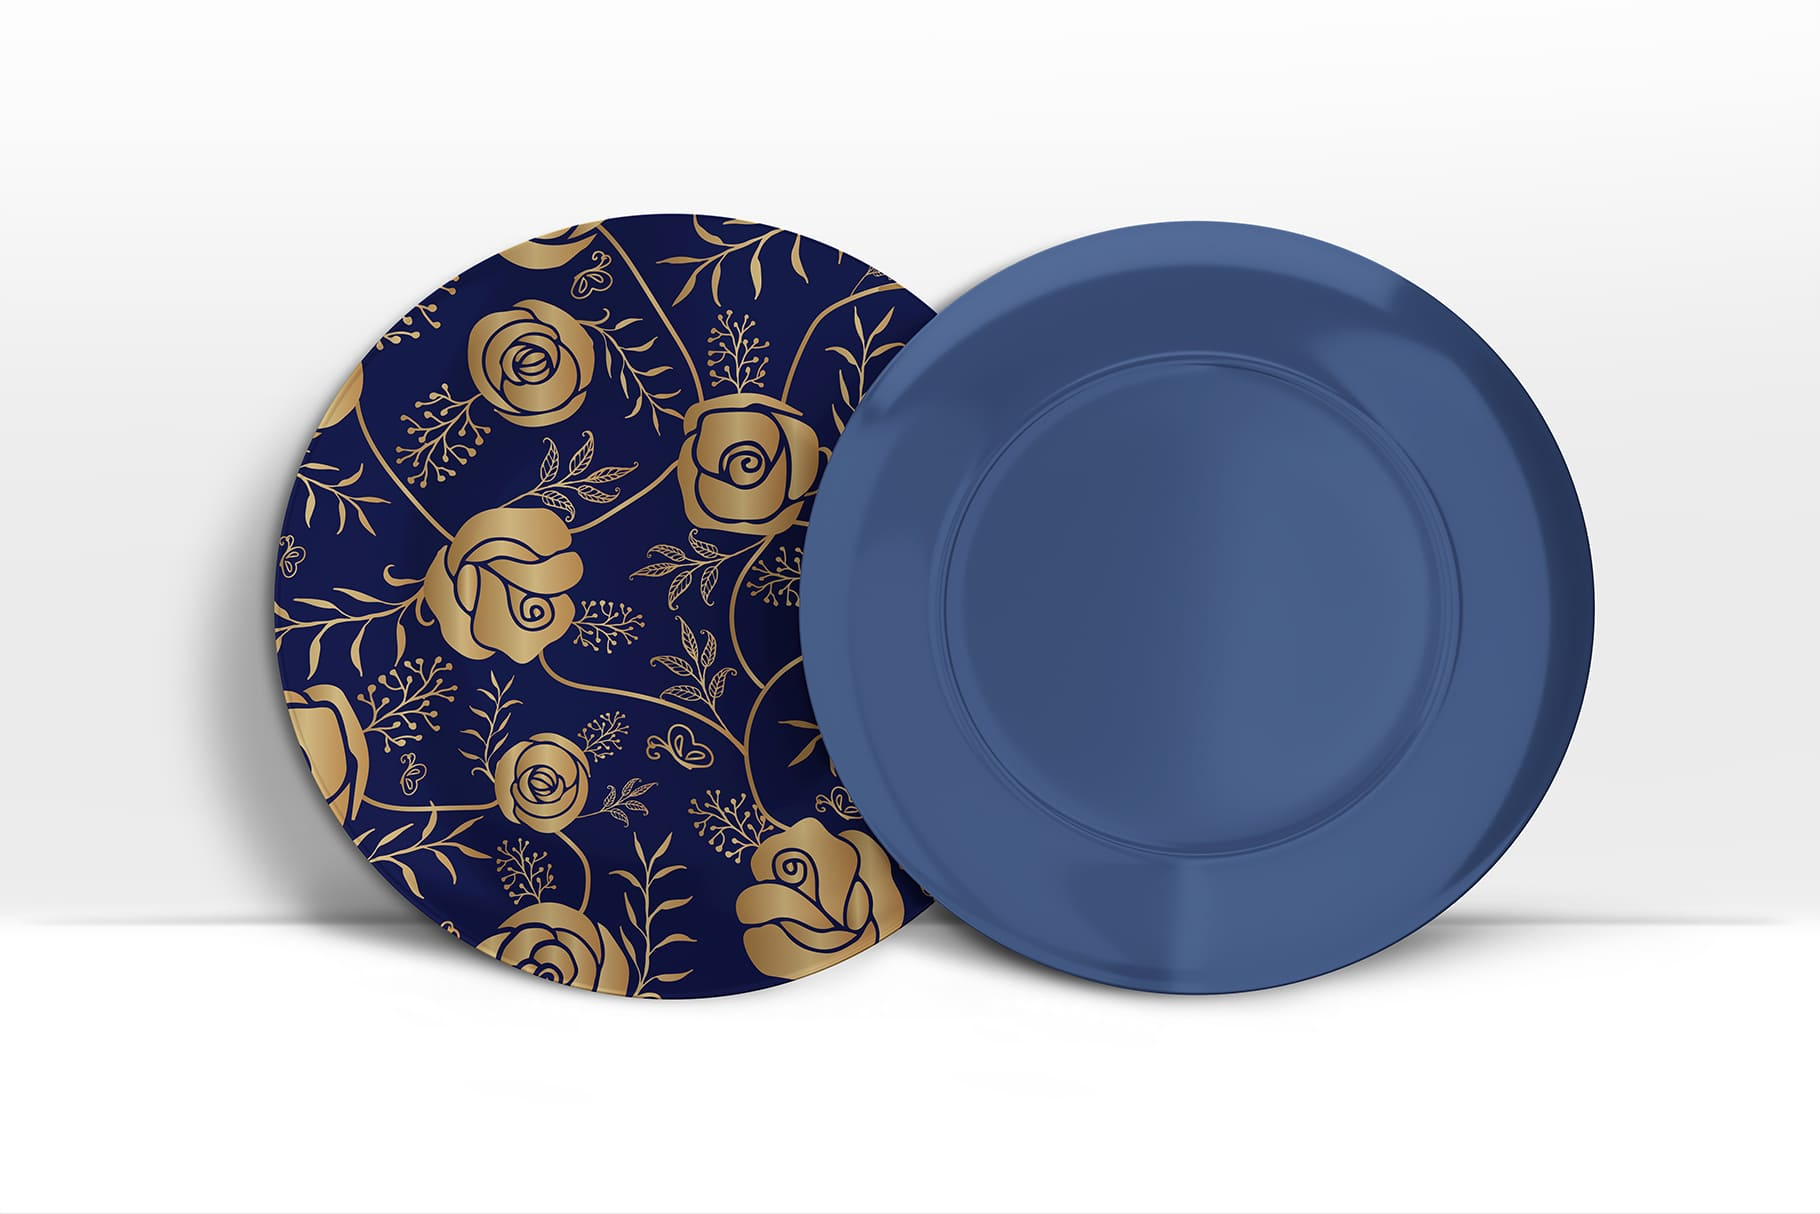 Luxurious blue plates with golden roses.